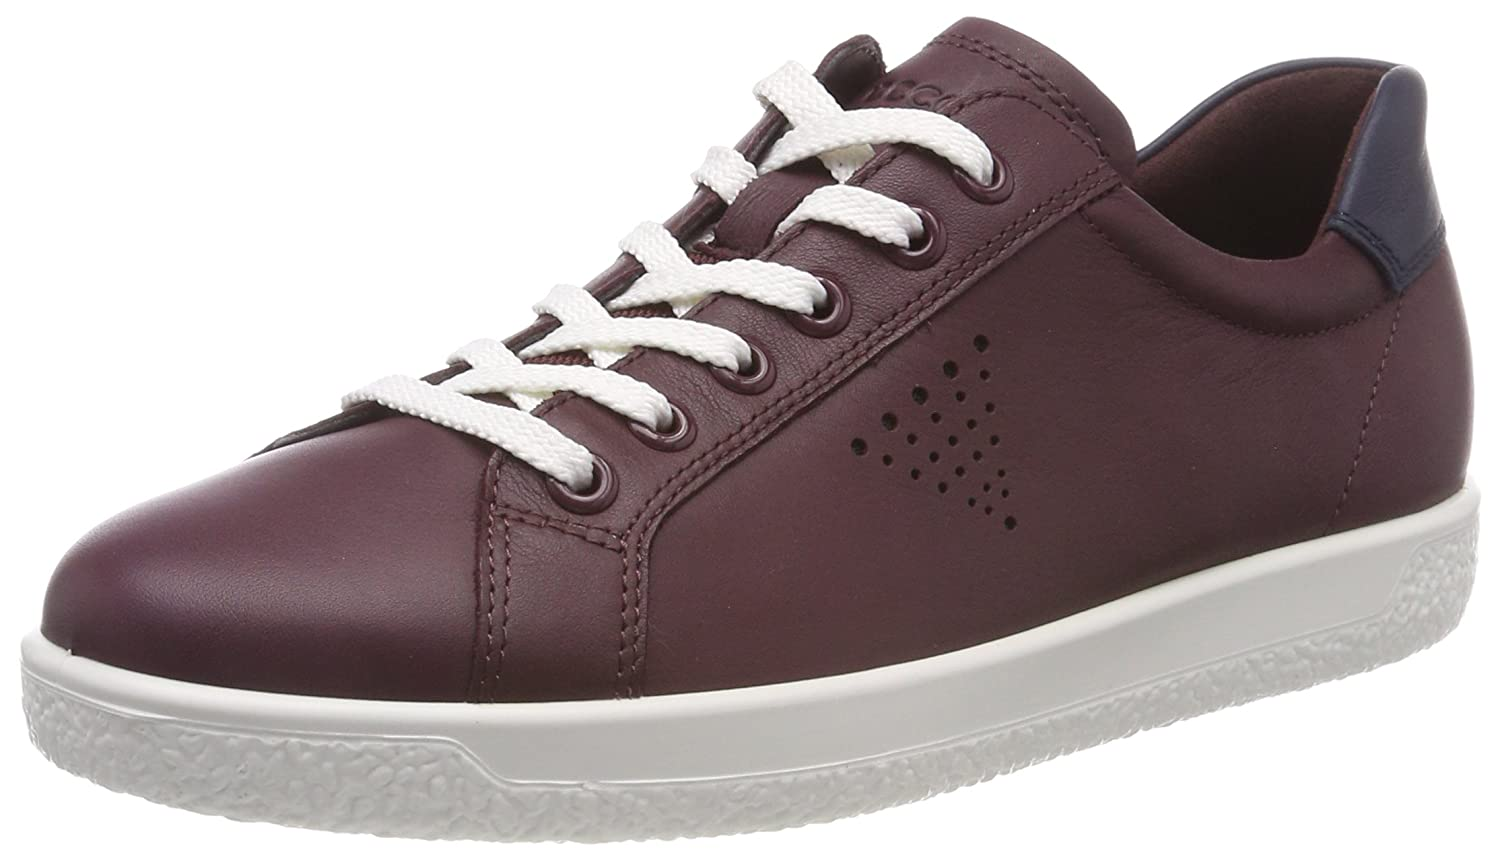 Wine ECCO Womens Soft 1 Lace Sneakers